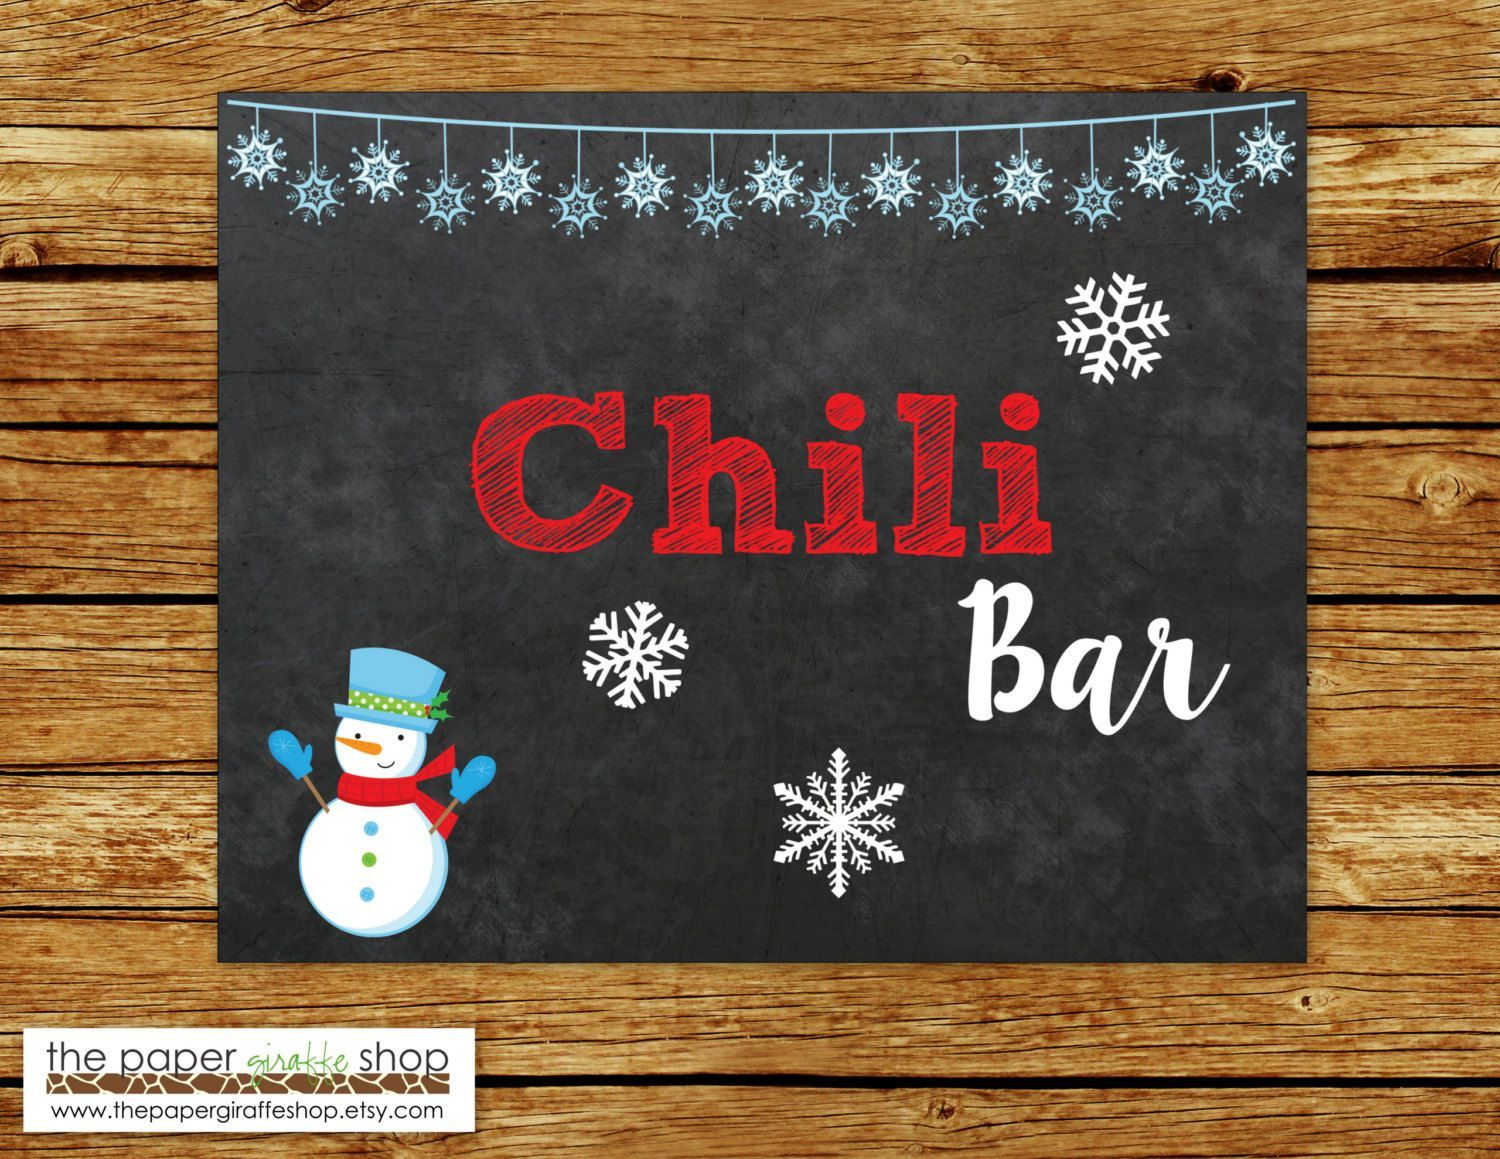 Chili Bar Sign | Chalkboard Sign | Chili Bar Sign with Snowman | Winter Wonderland Party Decorations | Winter Onederland #hotchocolatebar Chili Bar Sign | Chalkboard Sign | Chili Bar Sign with Snowman | Winter Wonderland Party Decorations | Winter Onederland by ThePaperGiraffeShop on Etsy #chilibar